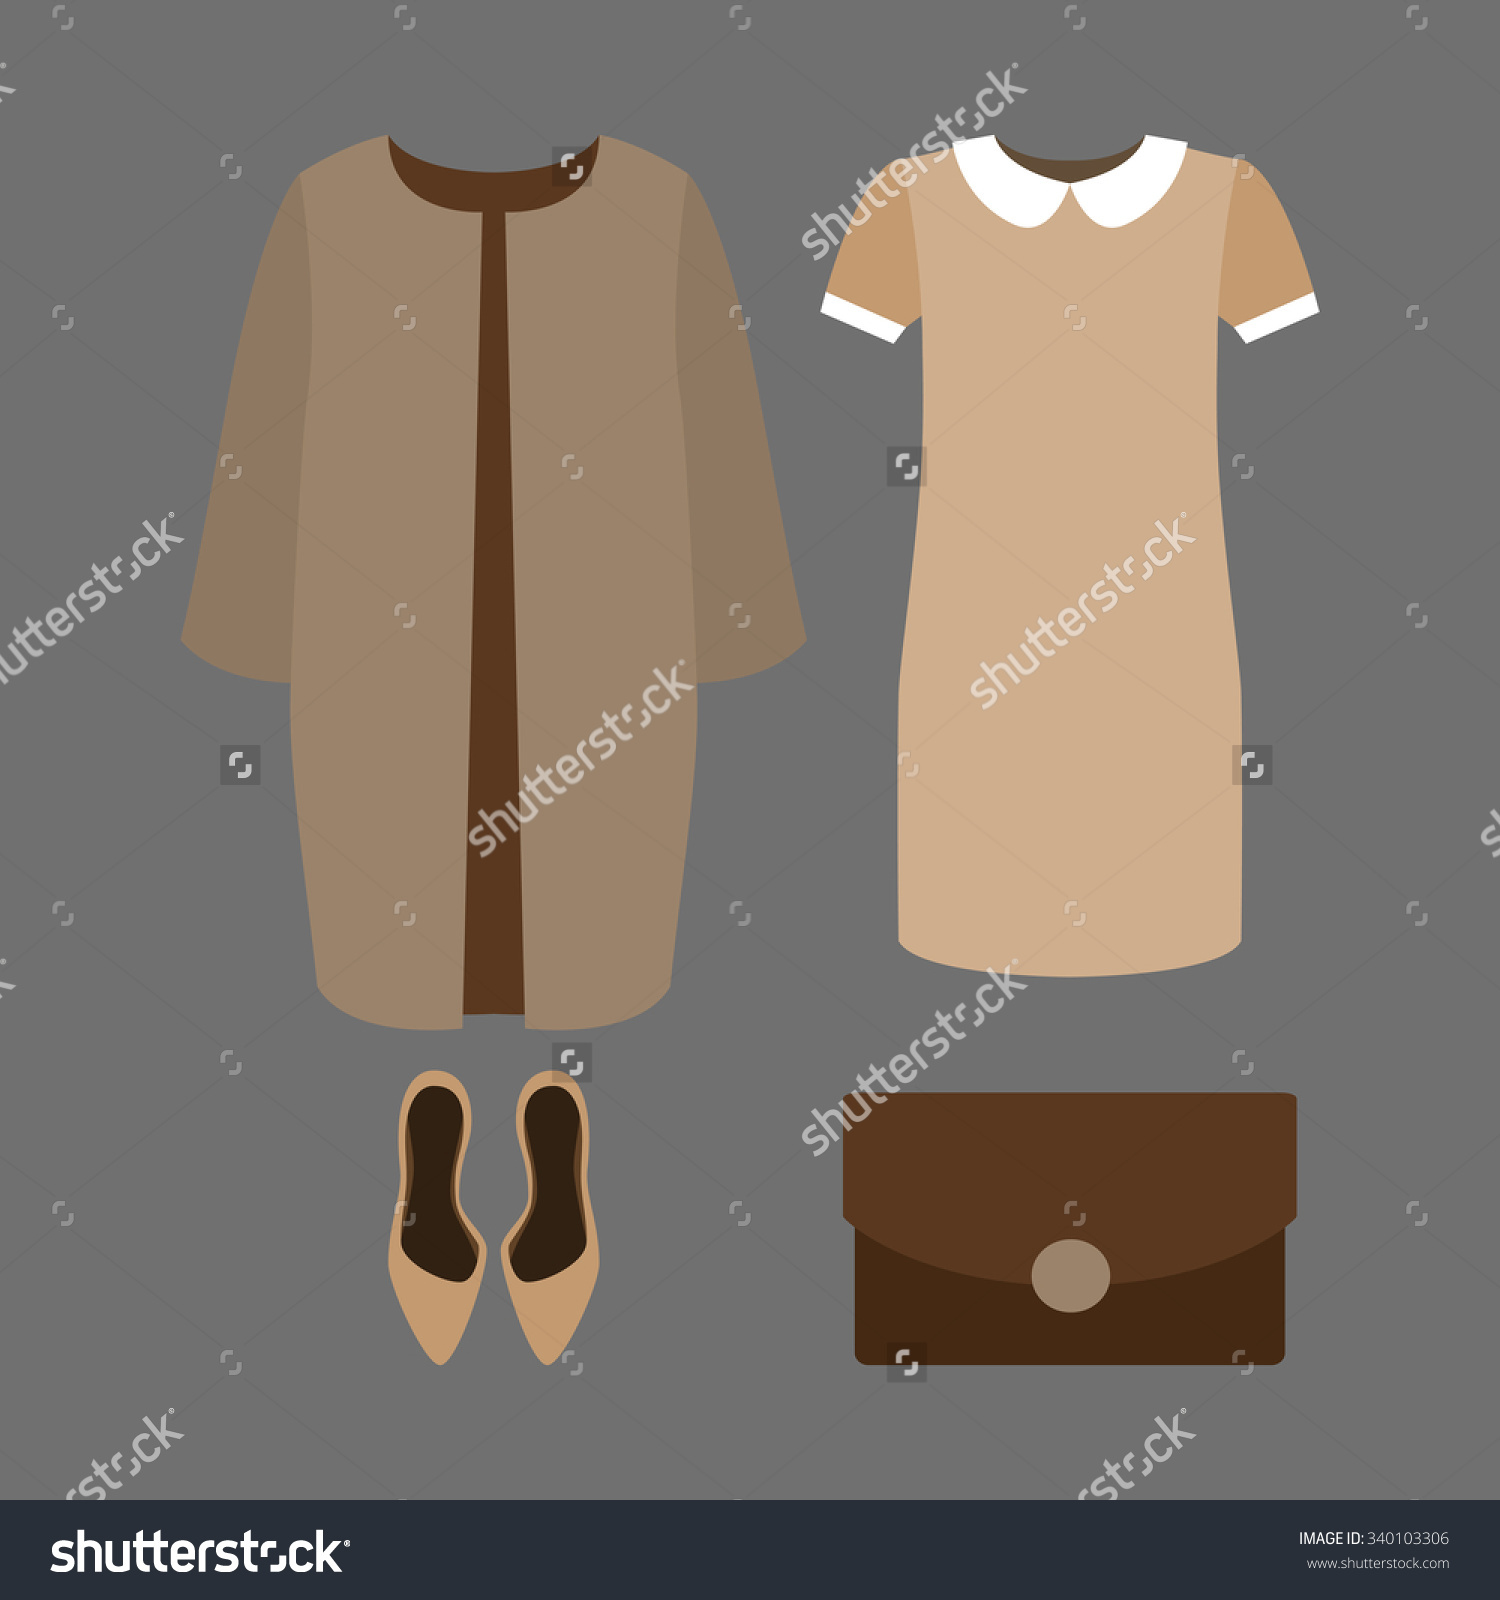 Our women coat clipart #13